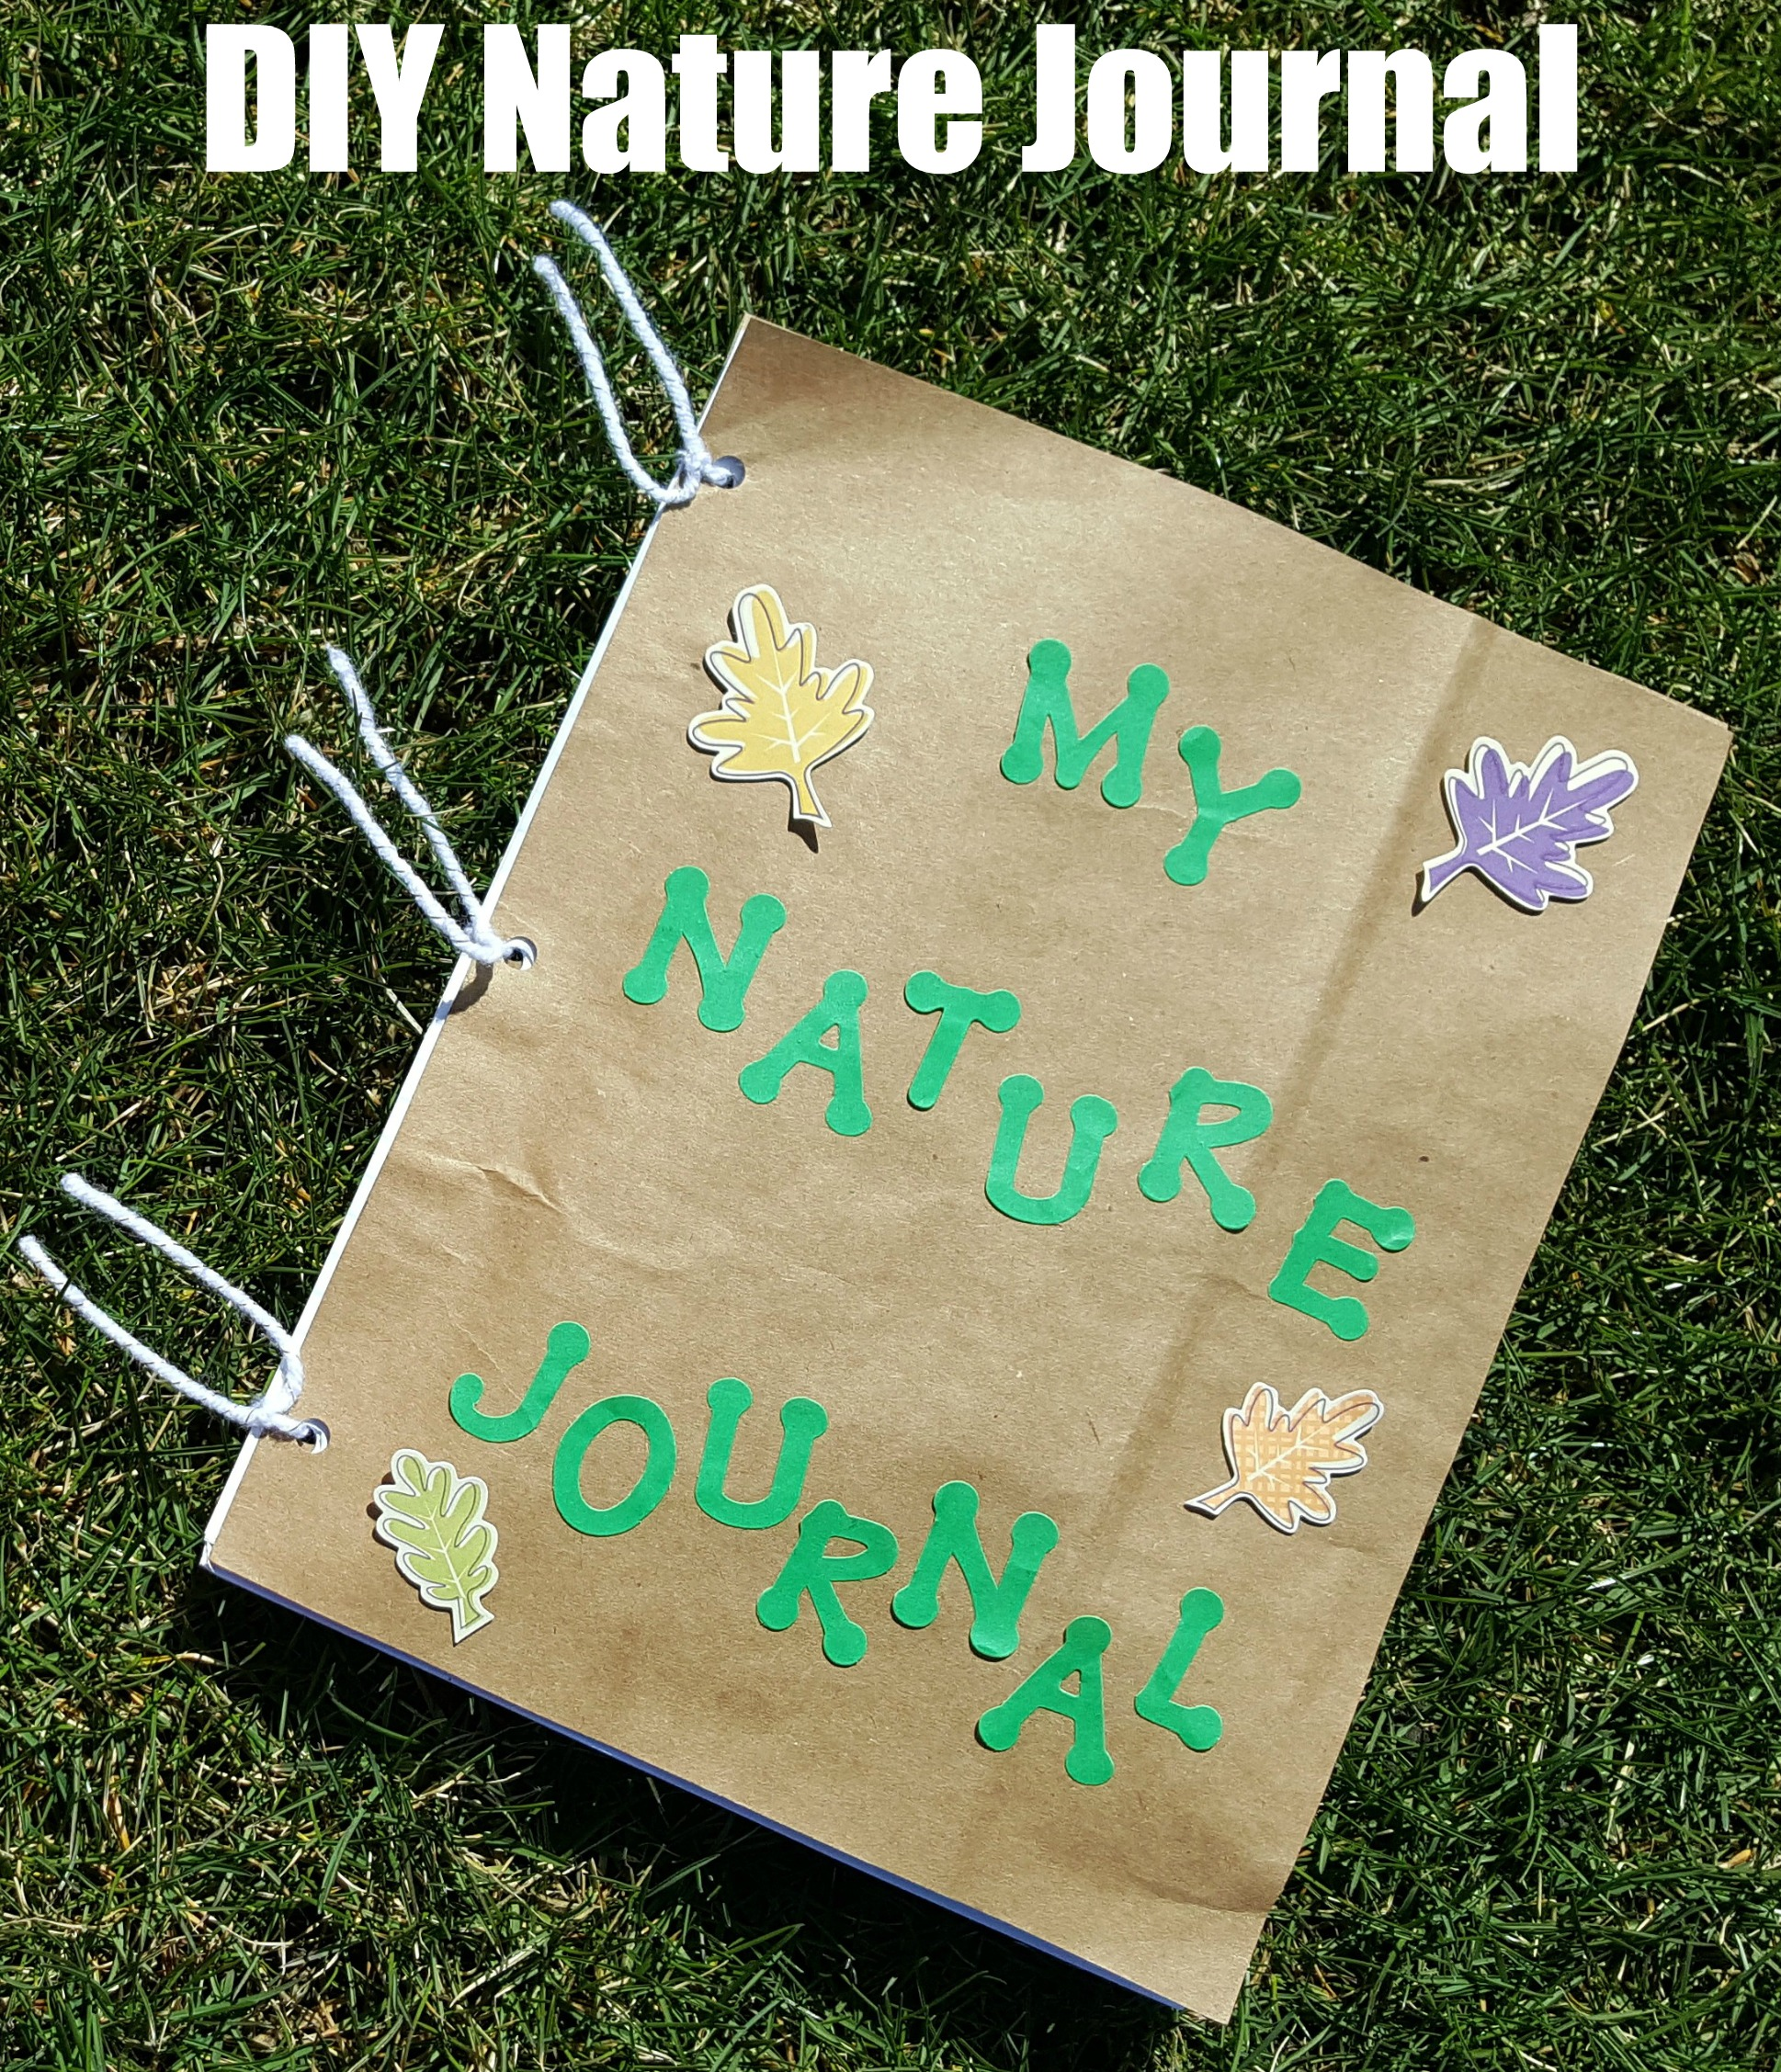 nature journal diy writing prompts activities included science paper outdoor blank making kid read hole bag fun spring